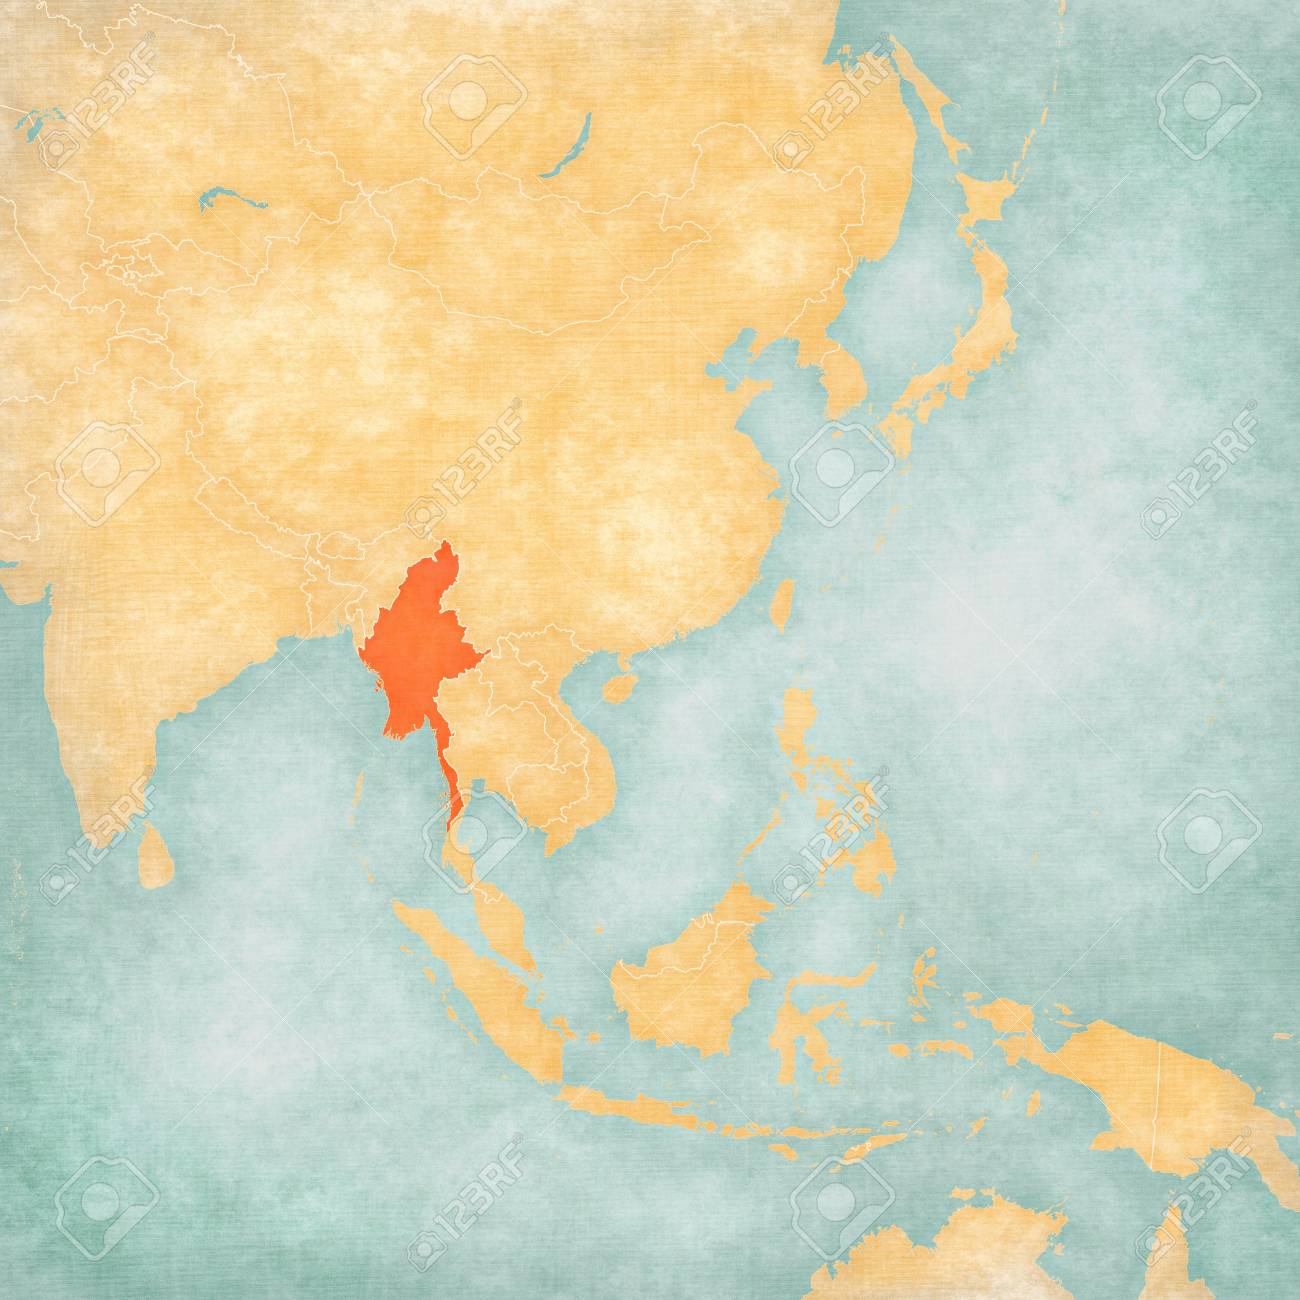 Myanmar on the map of East and Southeast Asia in soft grunge..